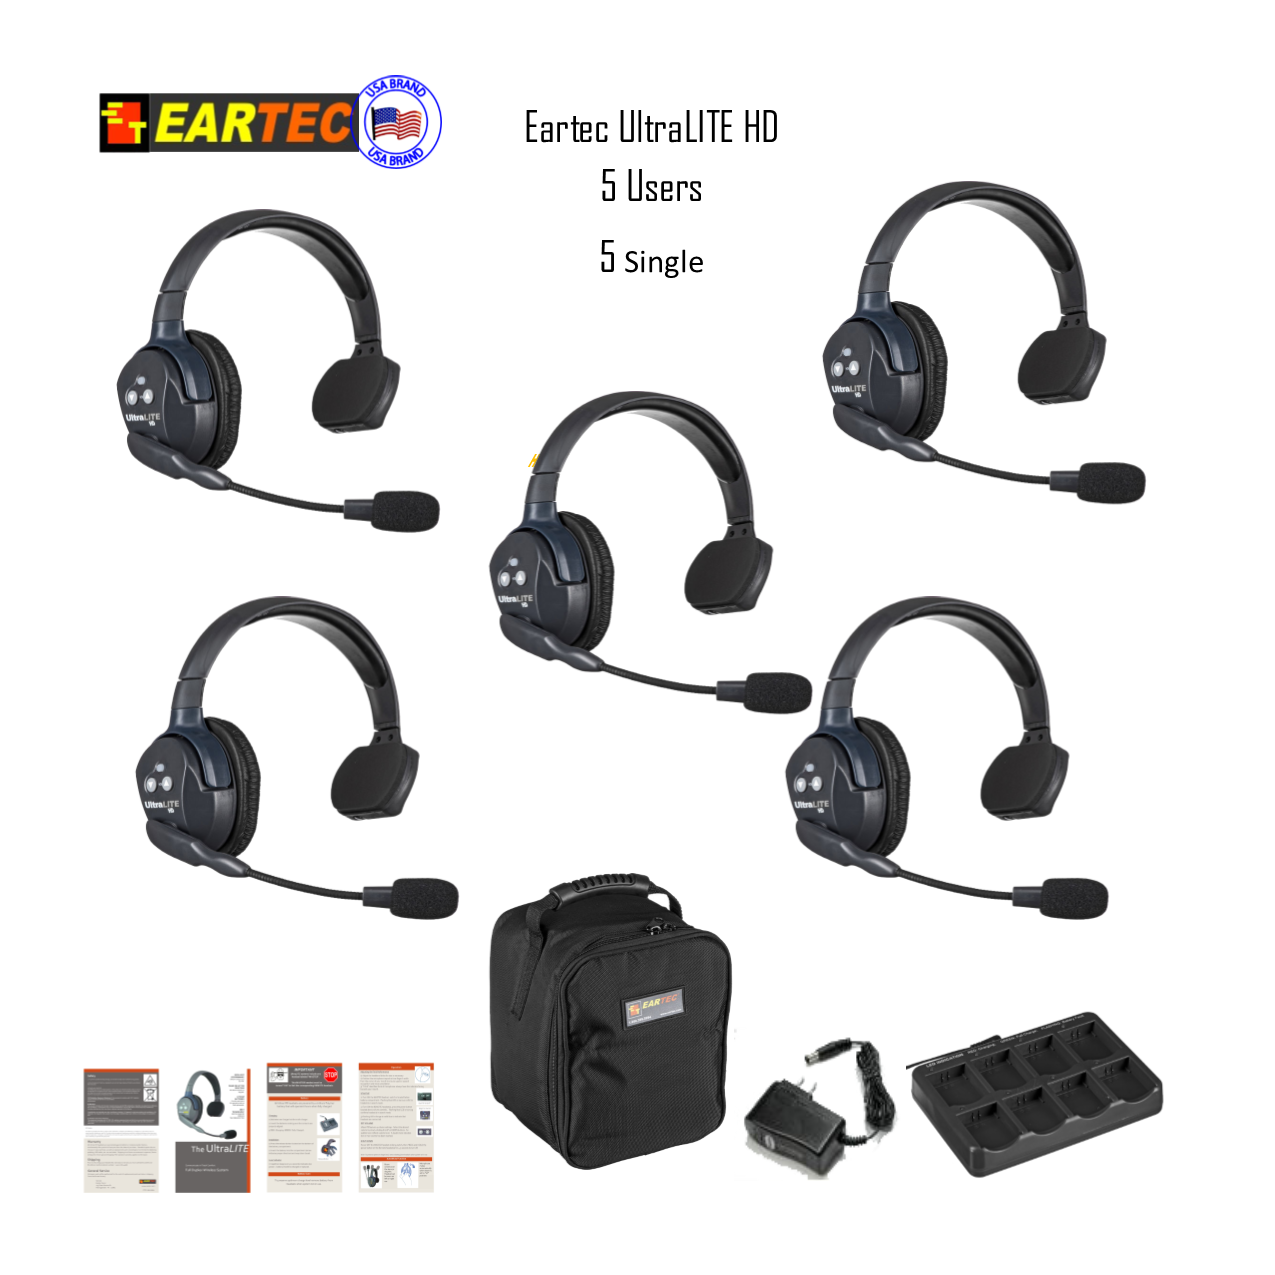 Eartec Ul5S Ultralite 5 Pers. System  5 Single Headsets Communications & IFB Eartec